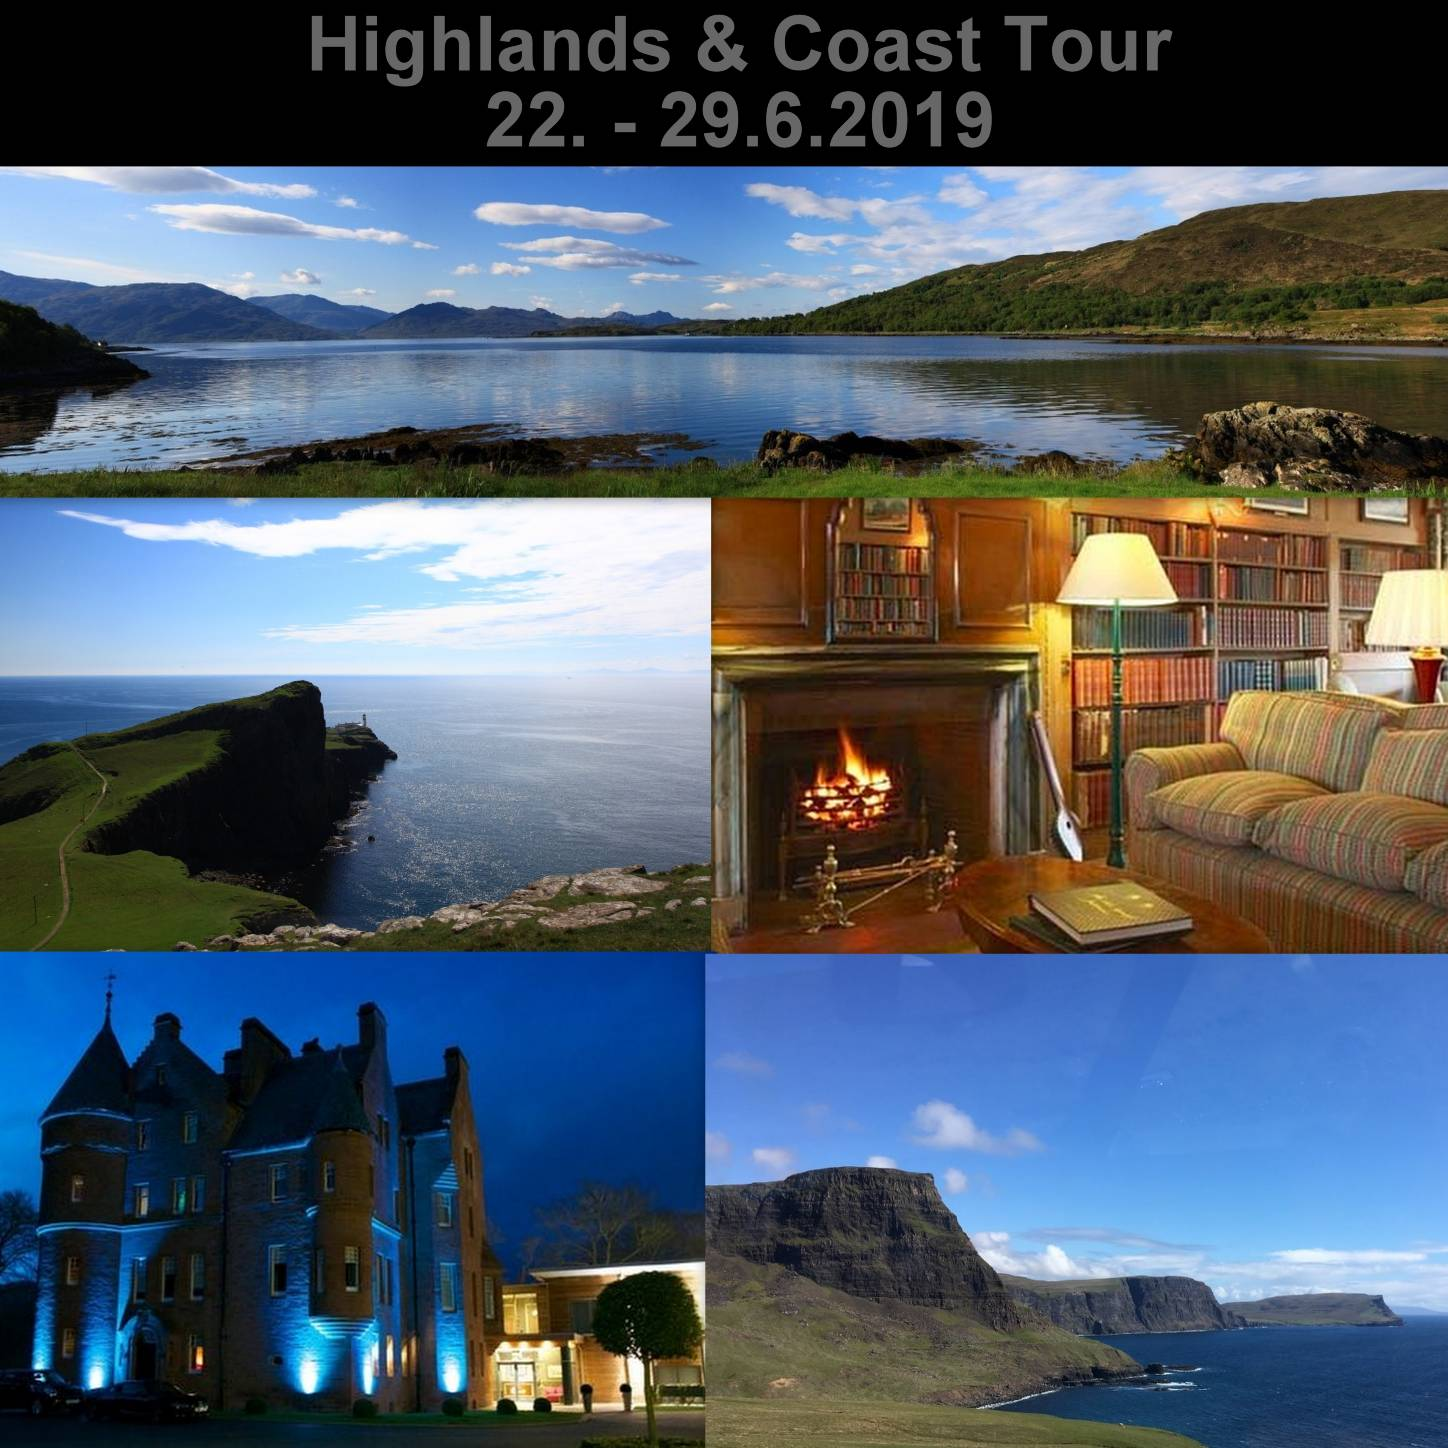 Highland & Coast Tour 2019